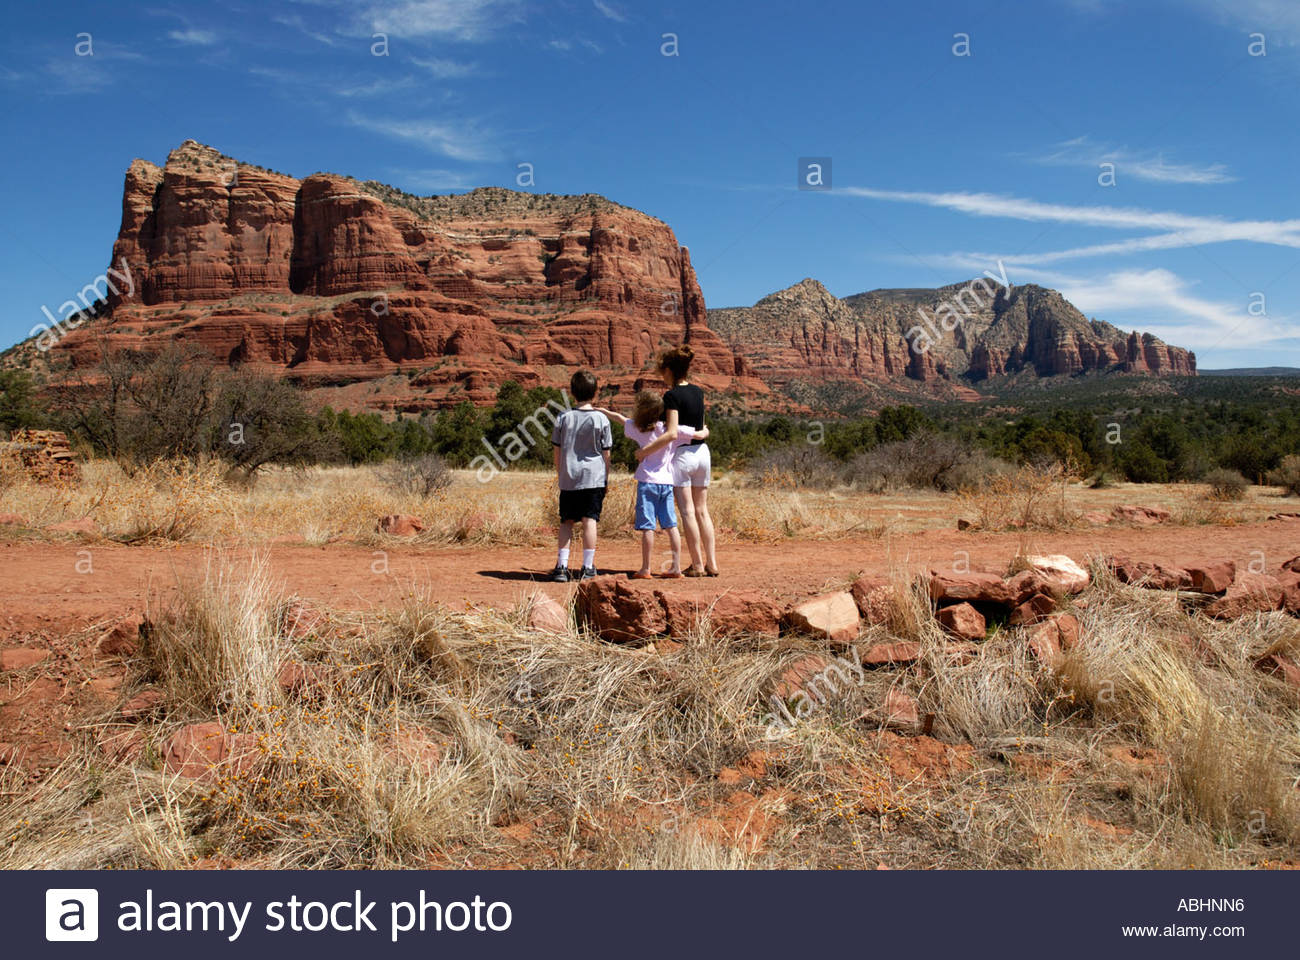 Family on trail path in Red Rock Country, near Sedona, Arizona looking at Couthouse Butte - Stock Image